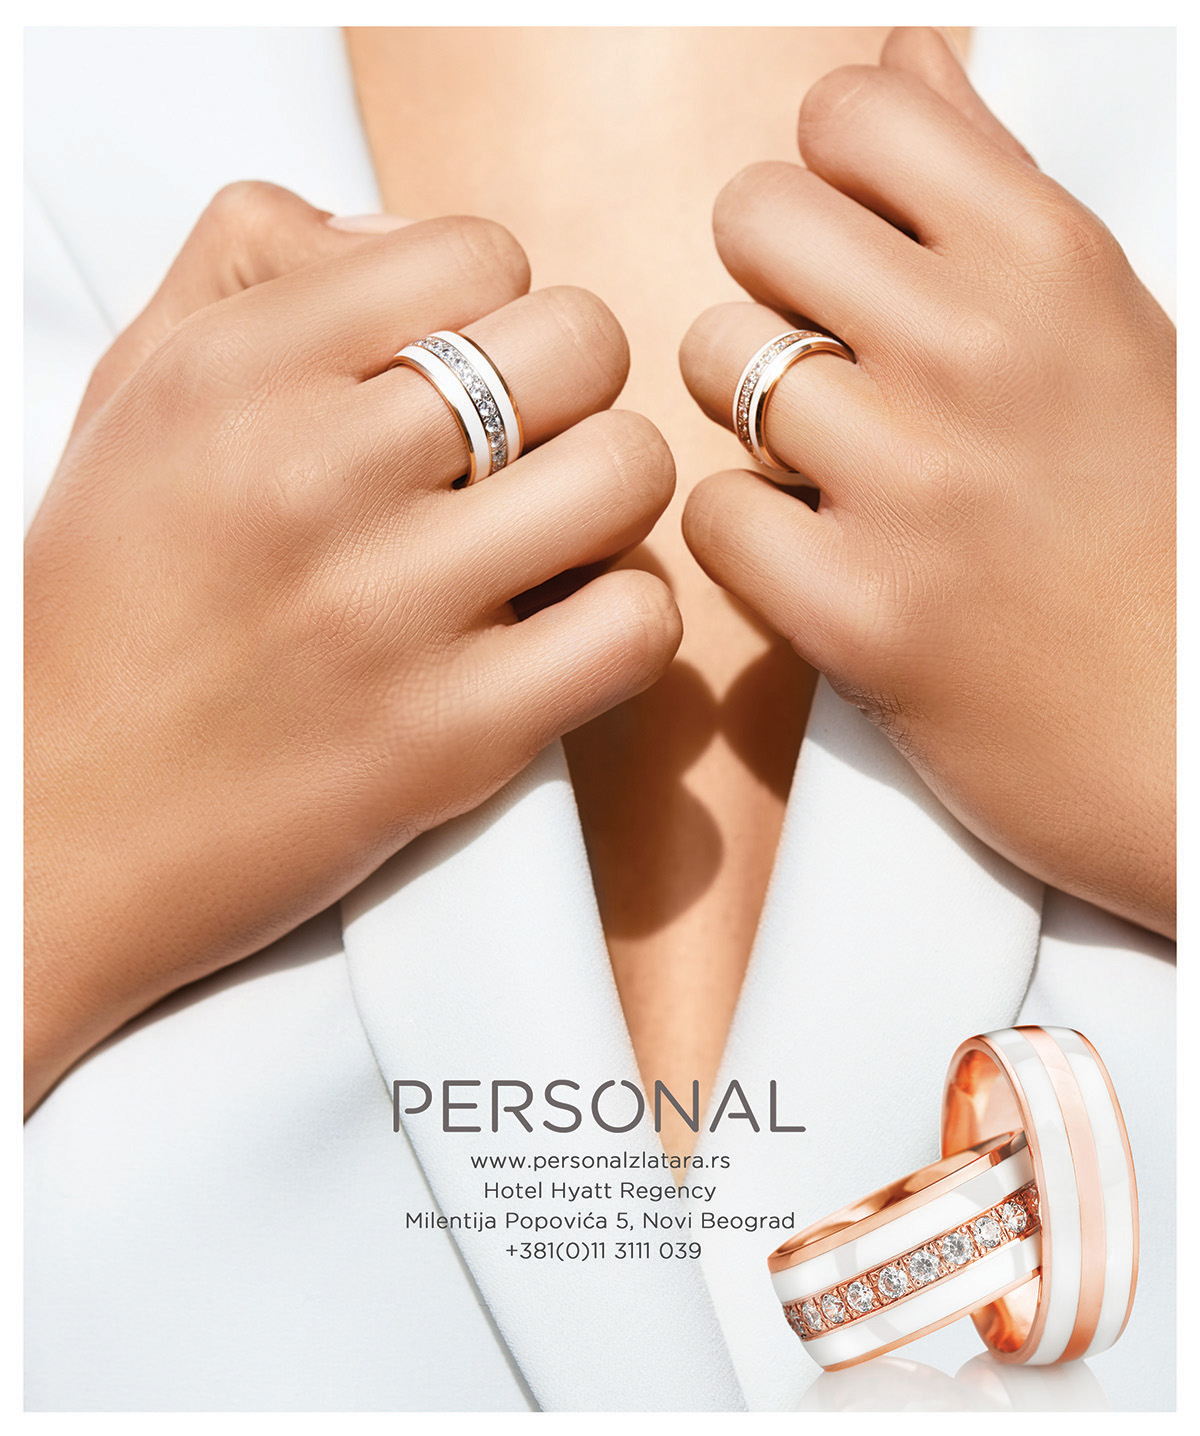 personal jewelry workshop press campaign milan ilic photographer